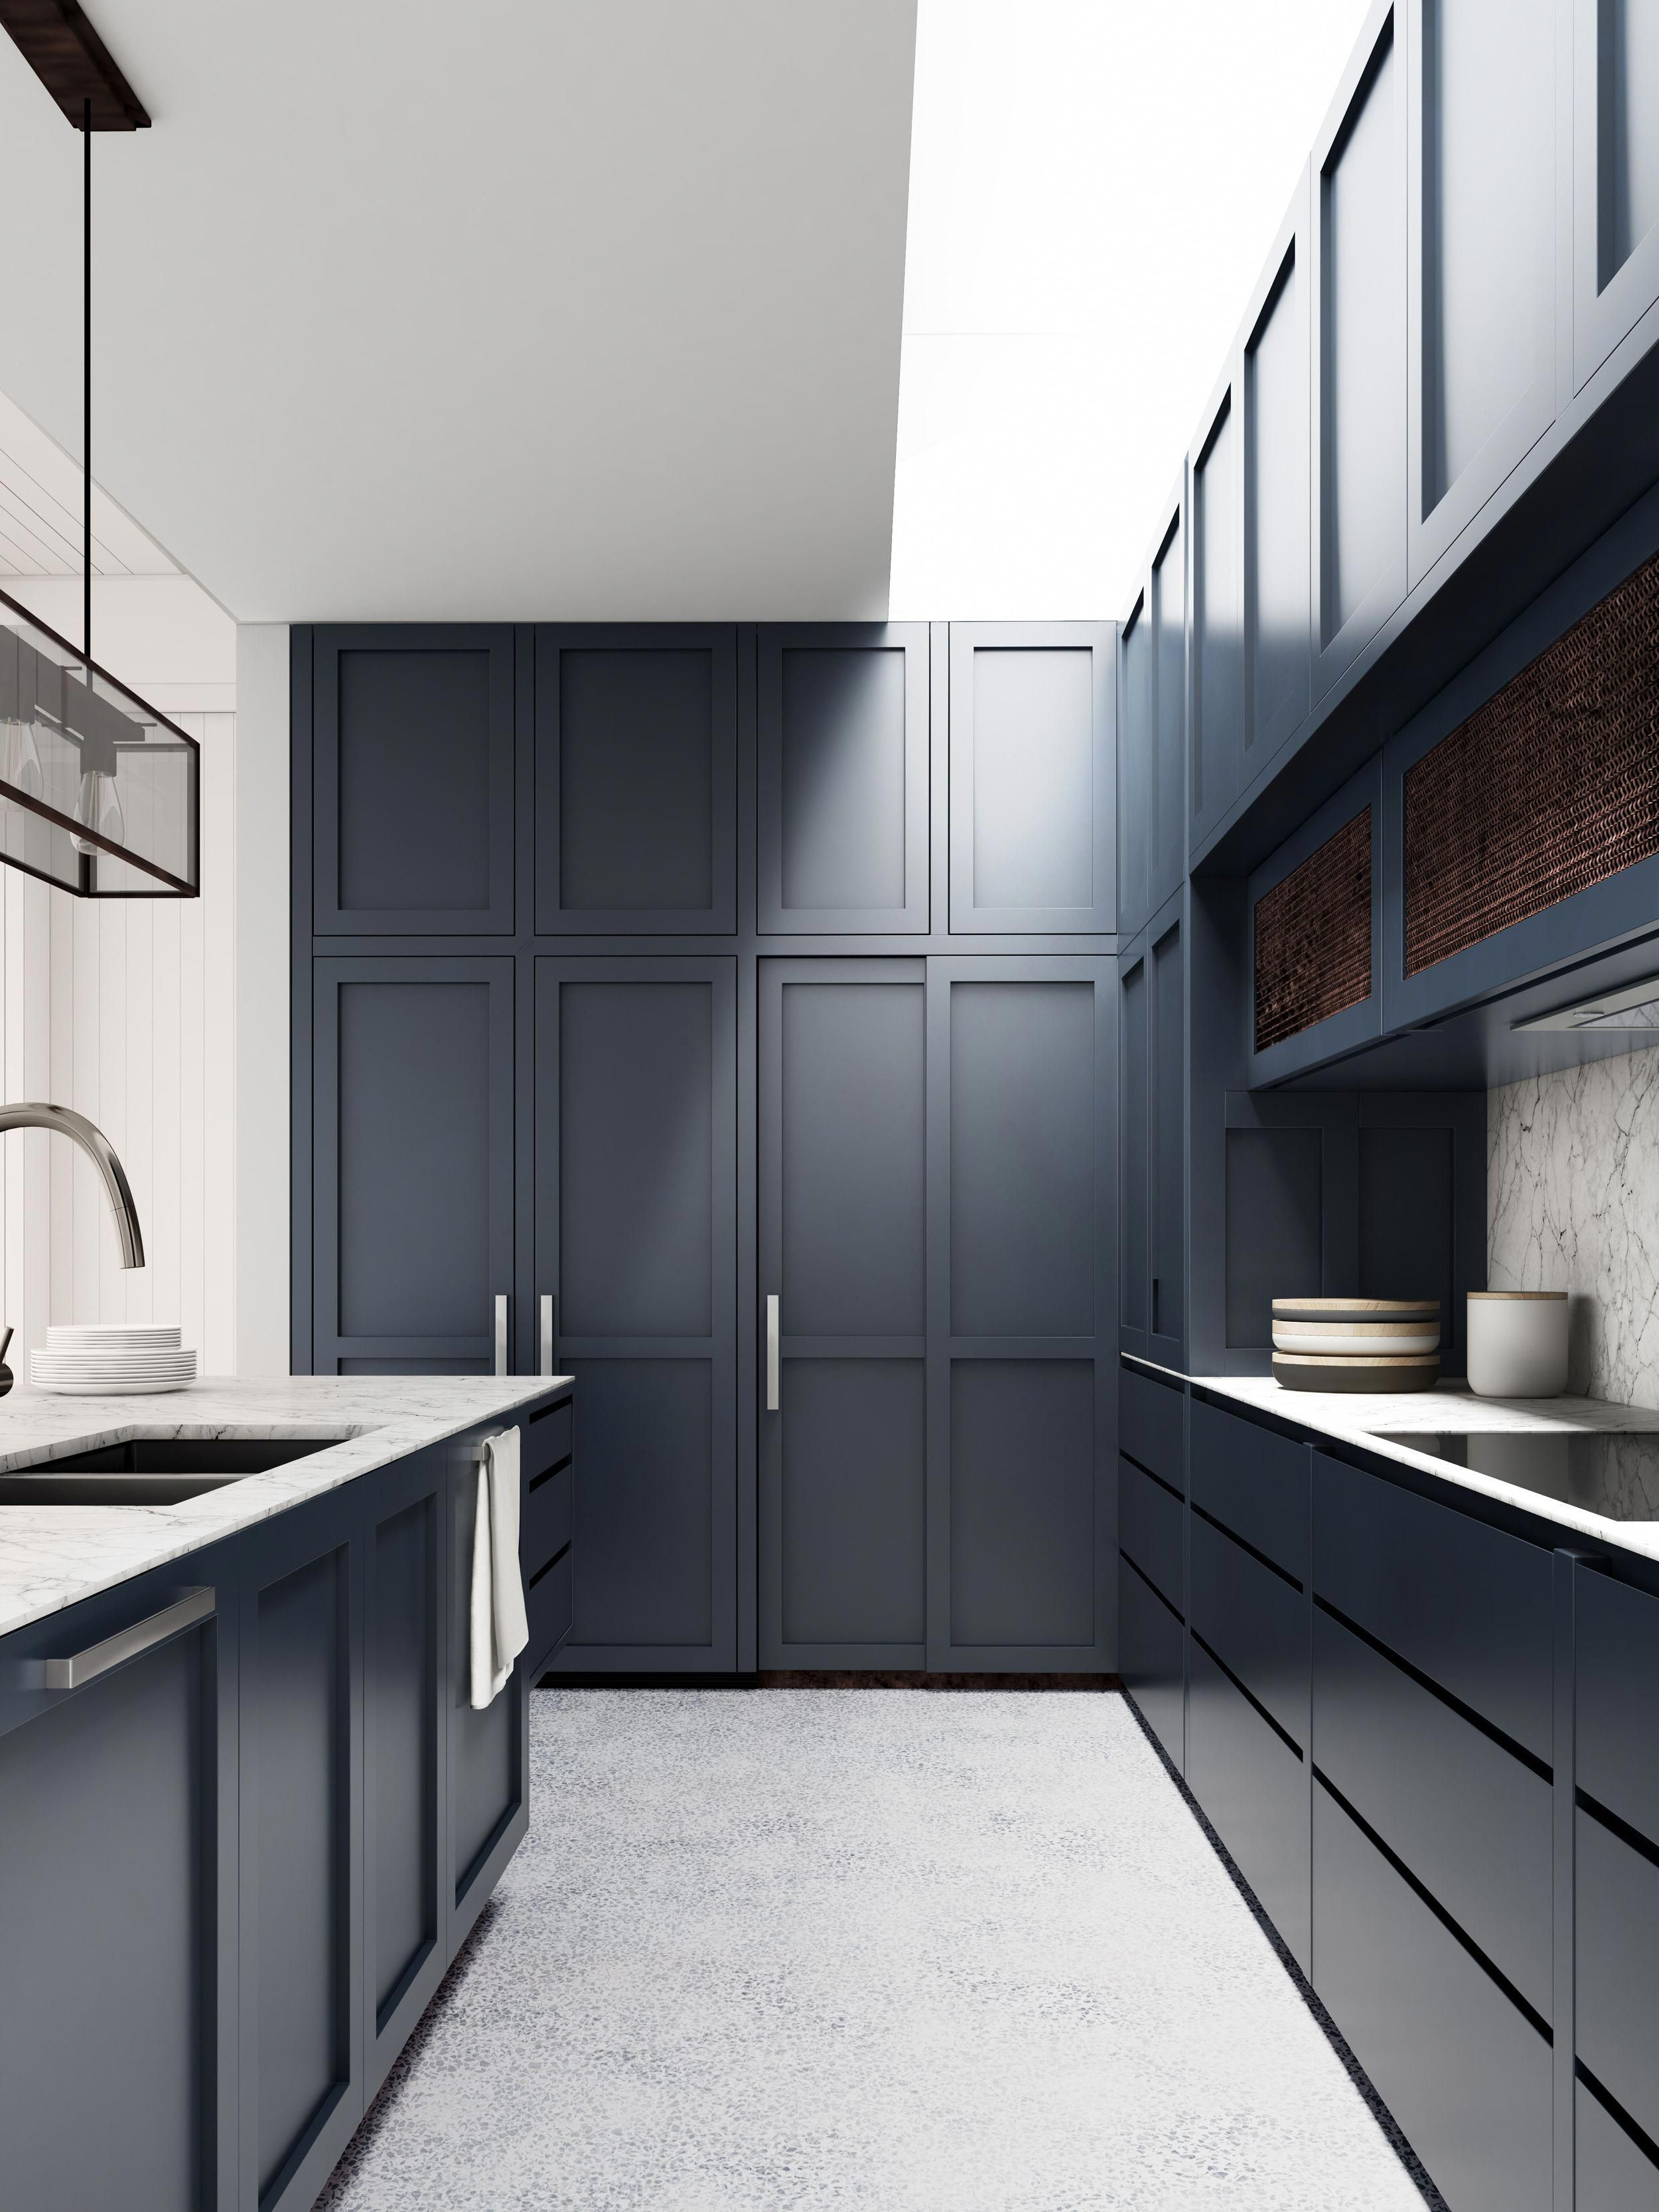 Criteria For Selection And Selection Of Kitchen Furniture